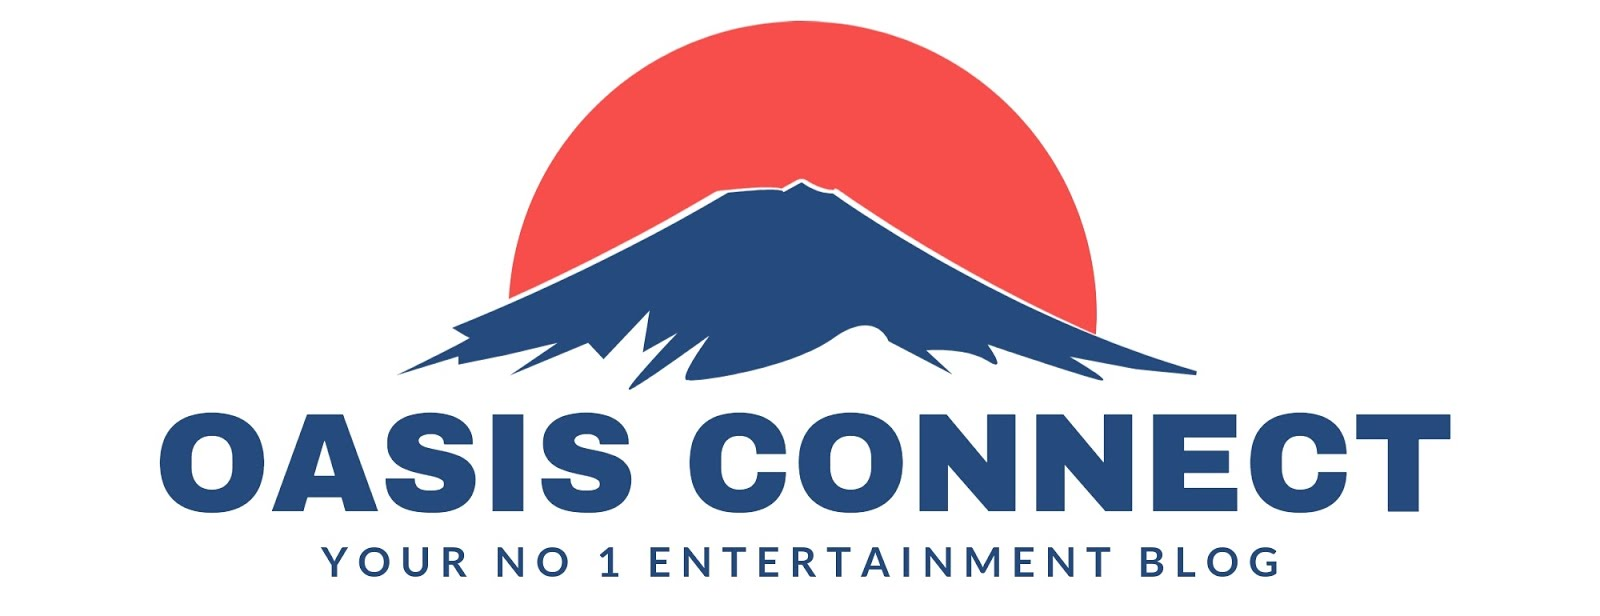 Oasis Connect | Your Fav. Entertainment Hub